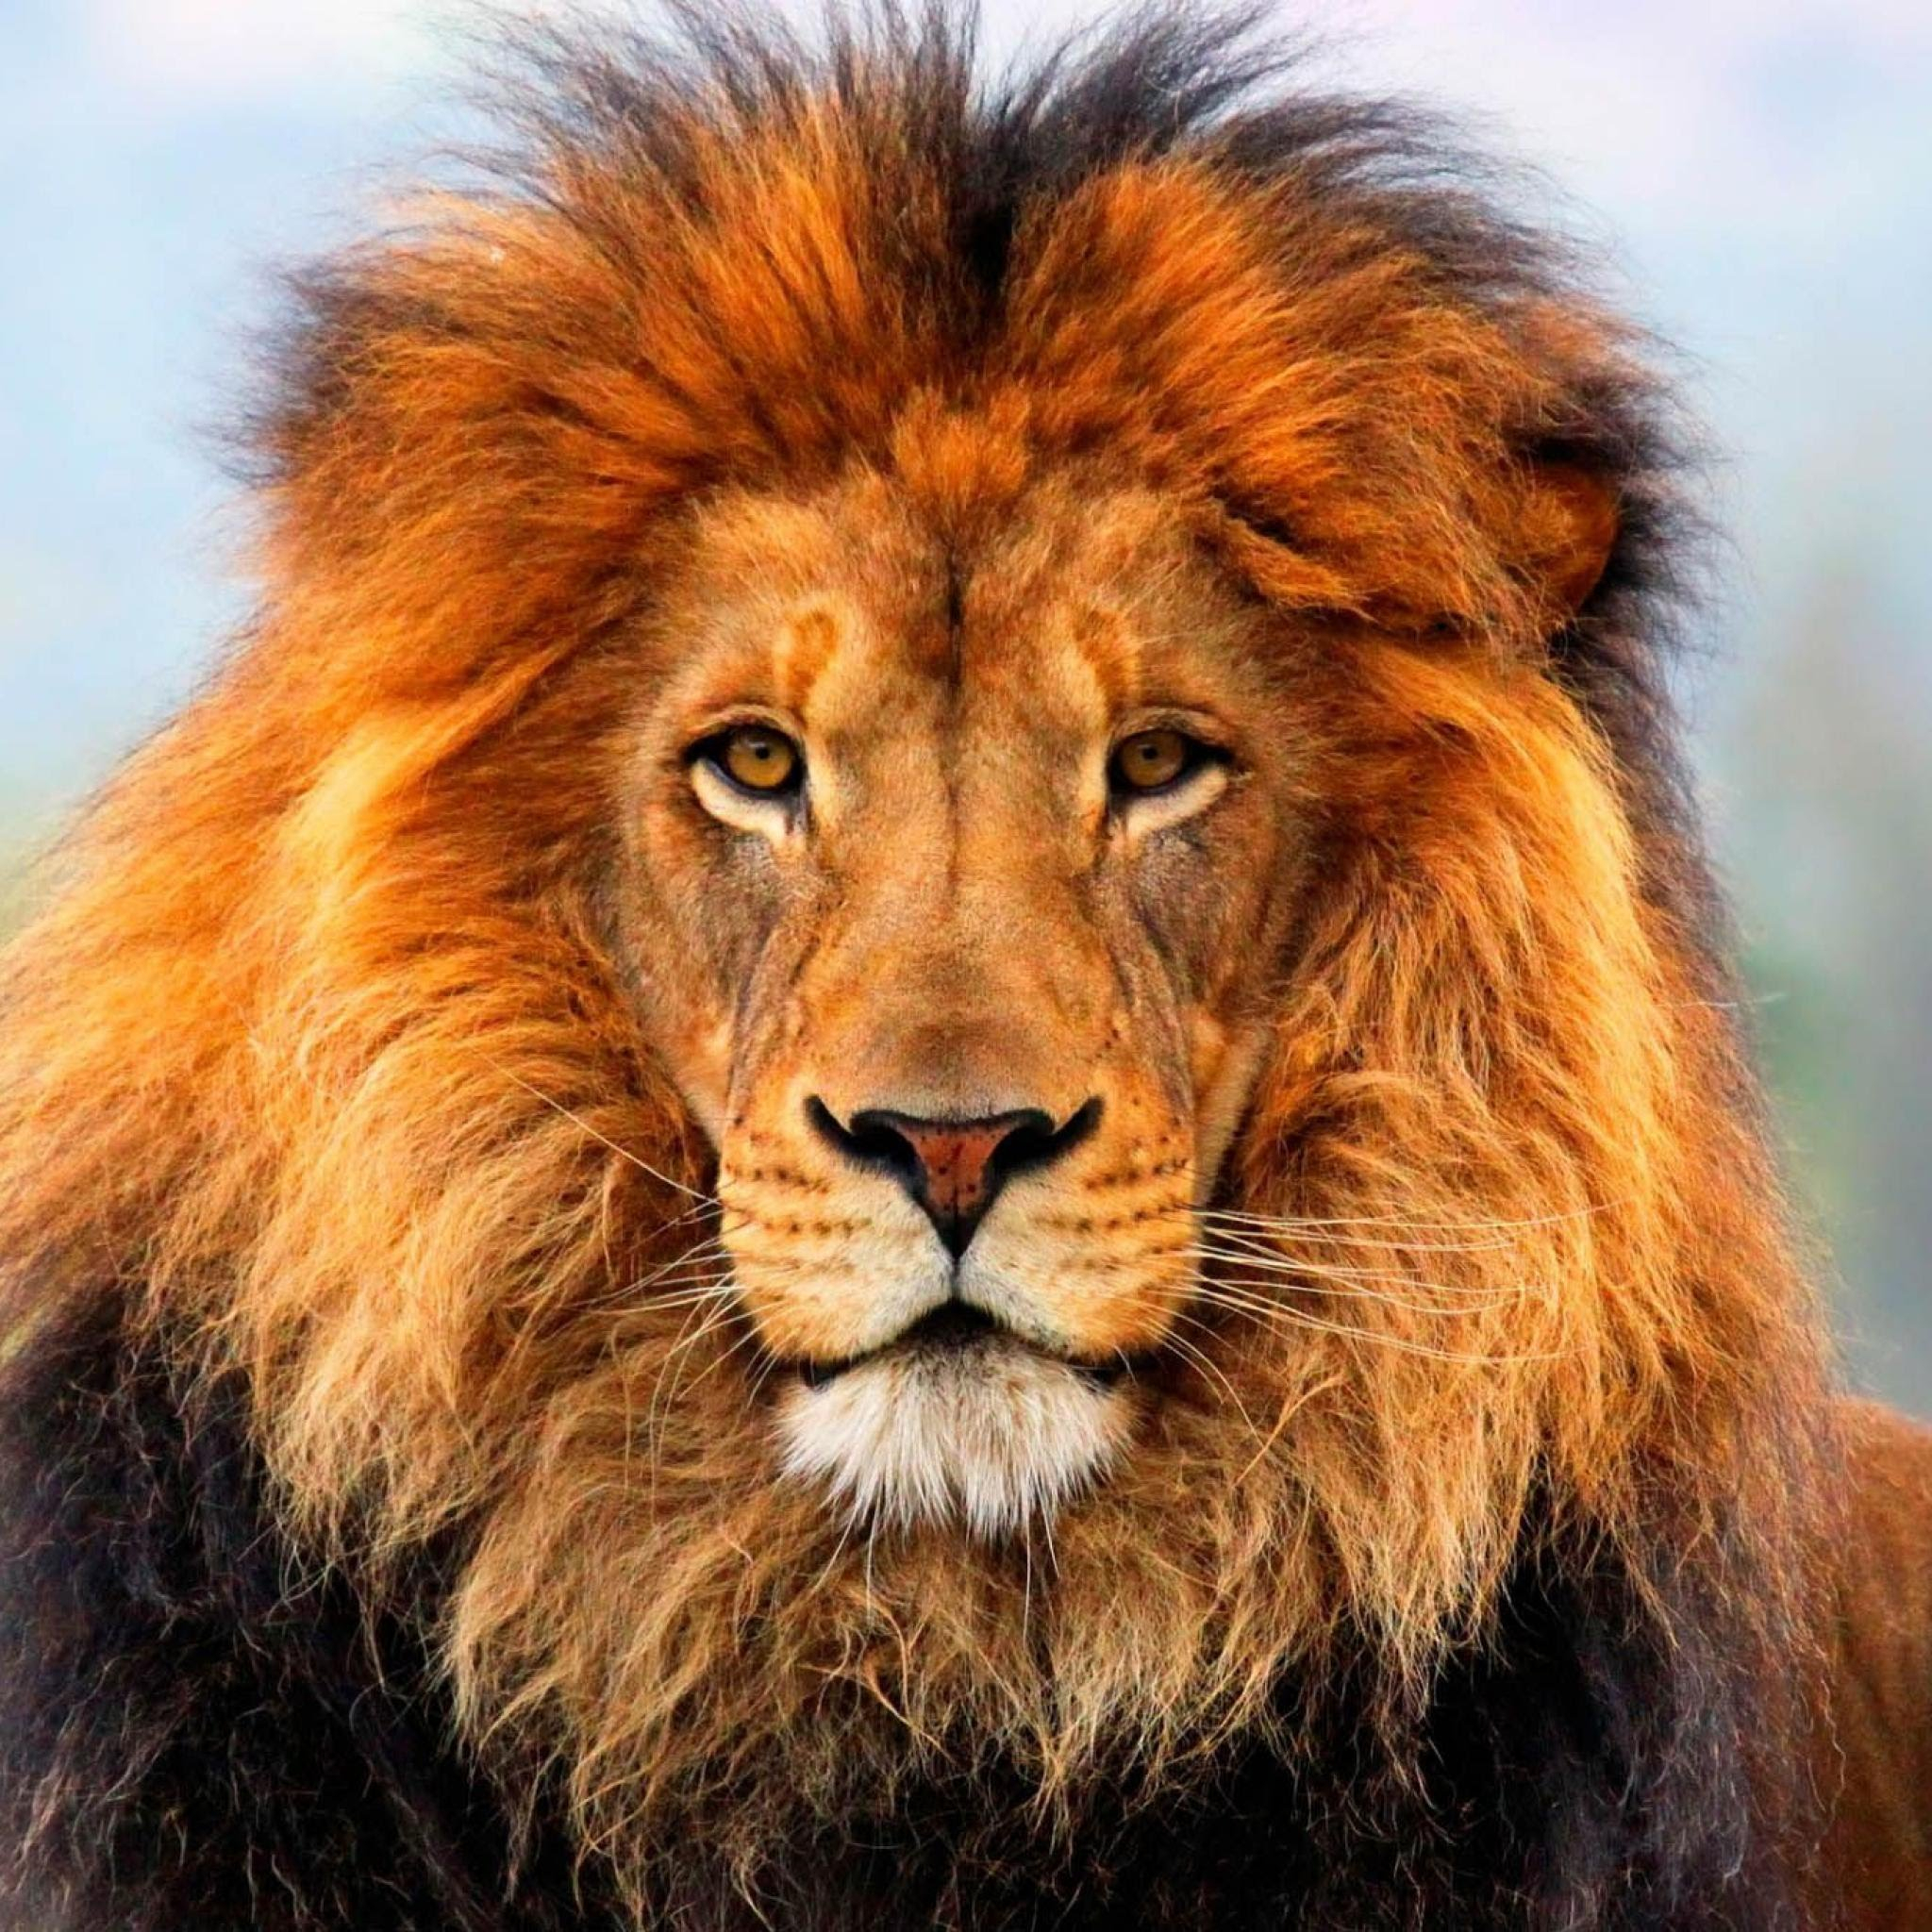 the asiatic lion once lived in armenia - history of armenia